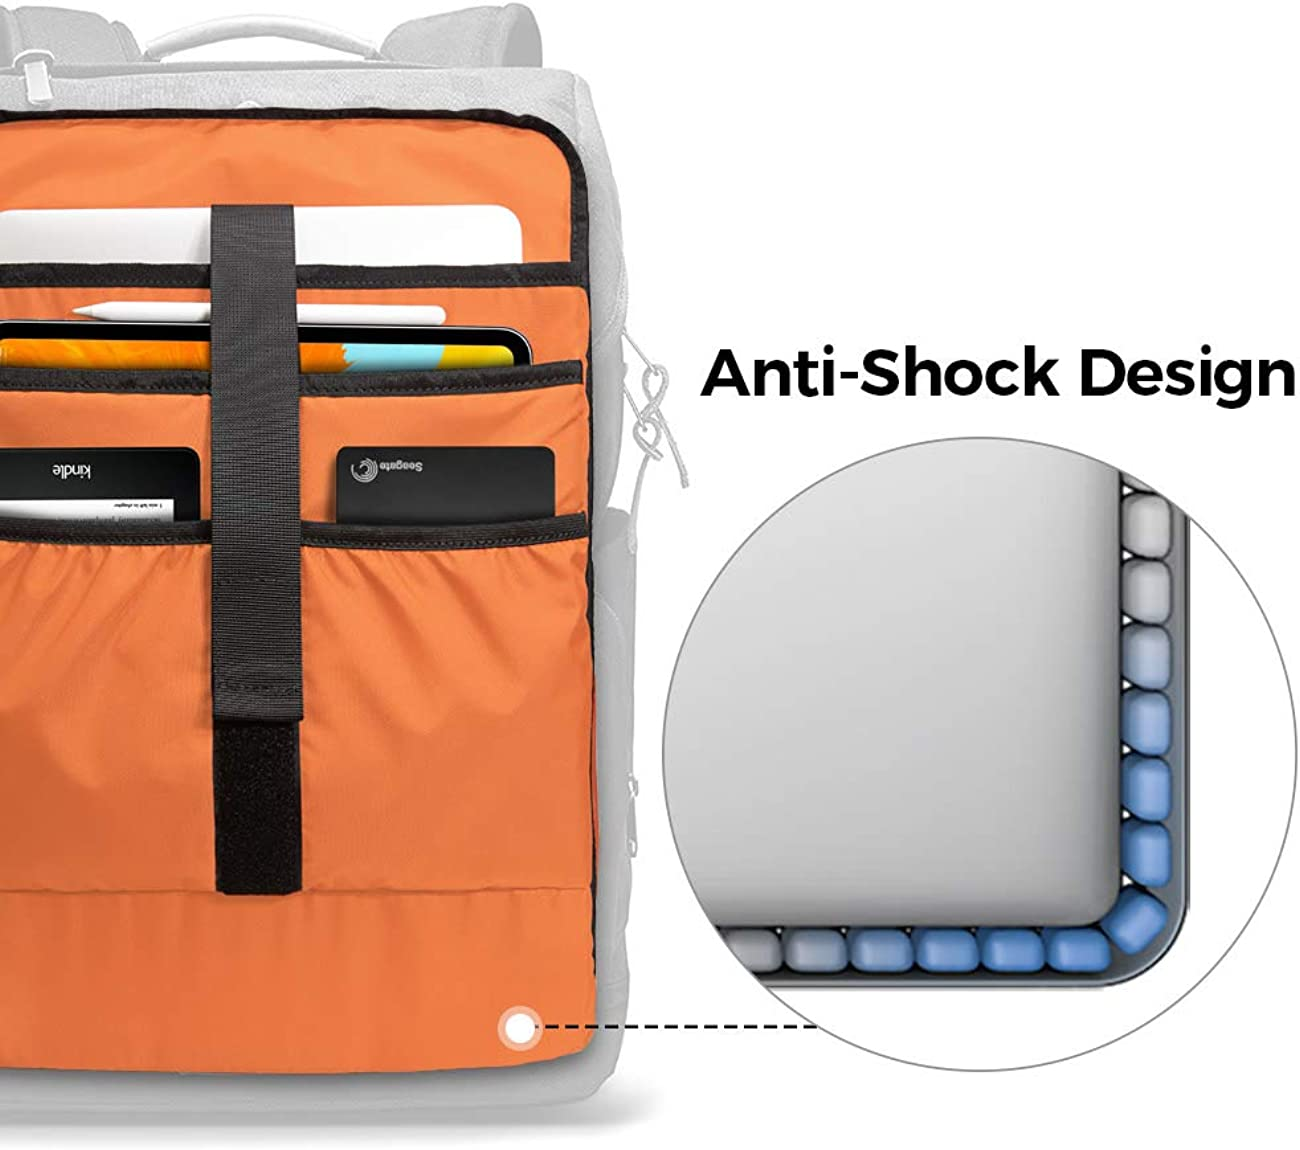 tomtoc Vintage Travel Backpack Business Durable Laptops Backpack with Charge Port Waterproof Computer Book Bag for Women /& Men Fits up to 15.6-inch Laptop Notebook /& 12.9//11 iPad